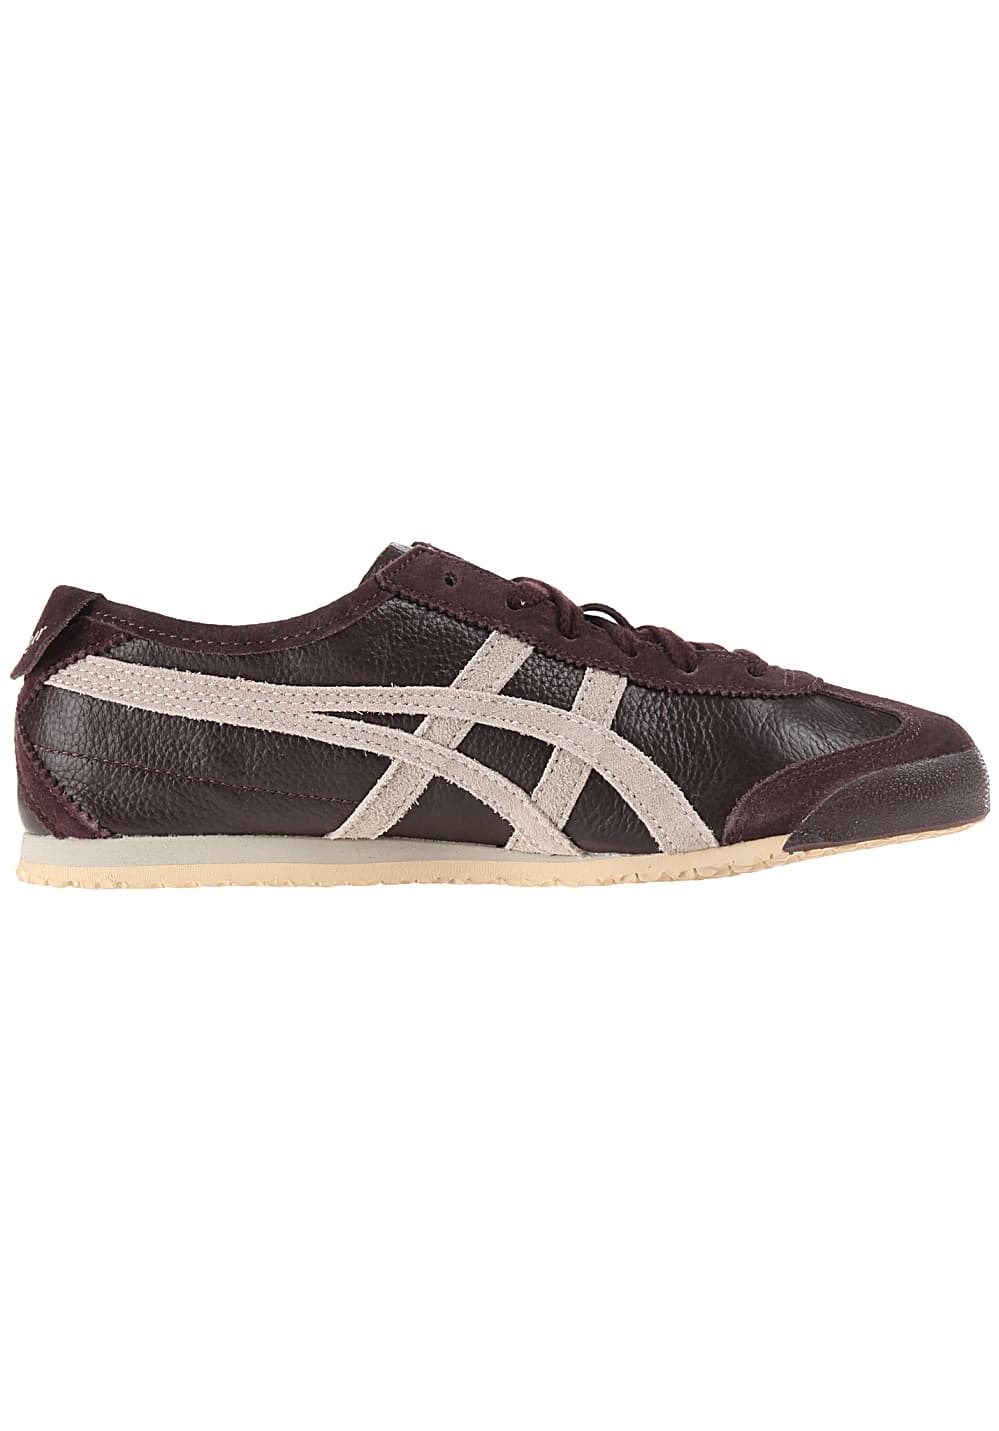 best service 9d864 67892 Onitsuka Tiger Mexico 66 Vin - Sneakers - Brown